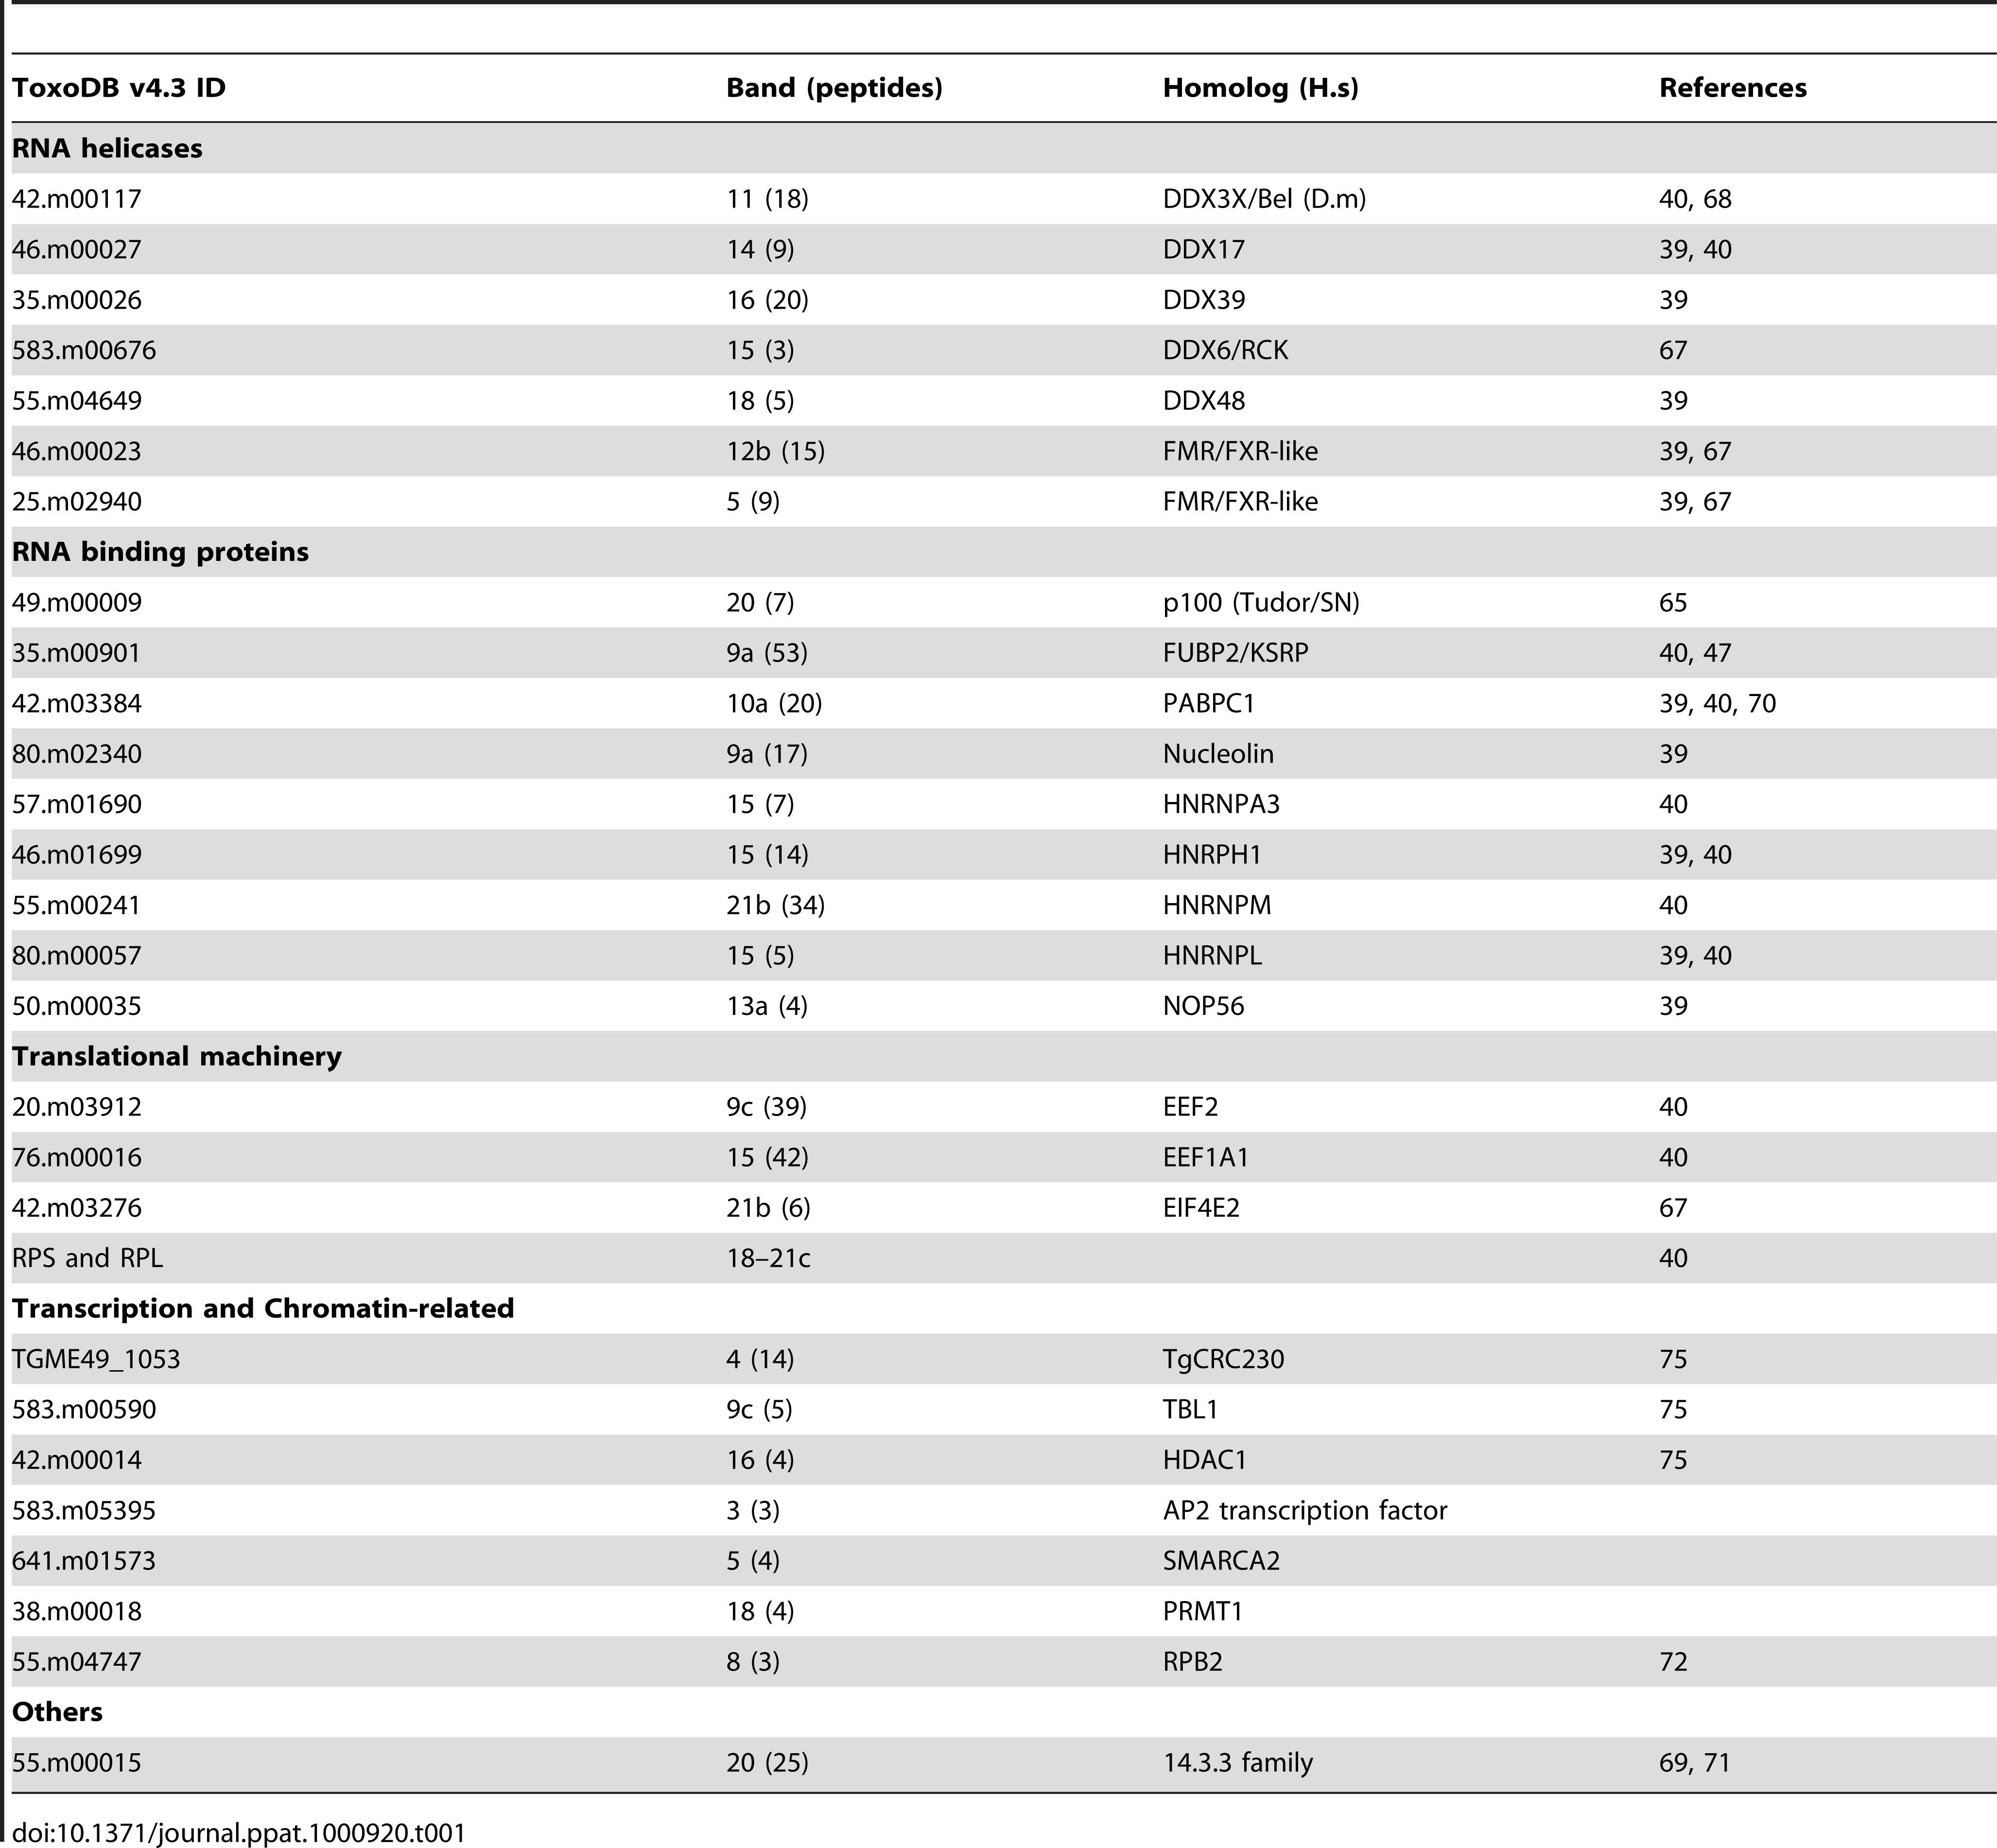 Summary of <i>Tg</i>-AGO-associated proteins identified by mass spectrometry.